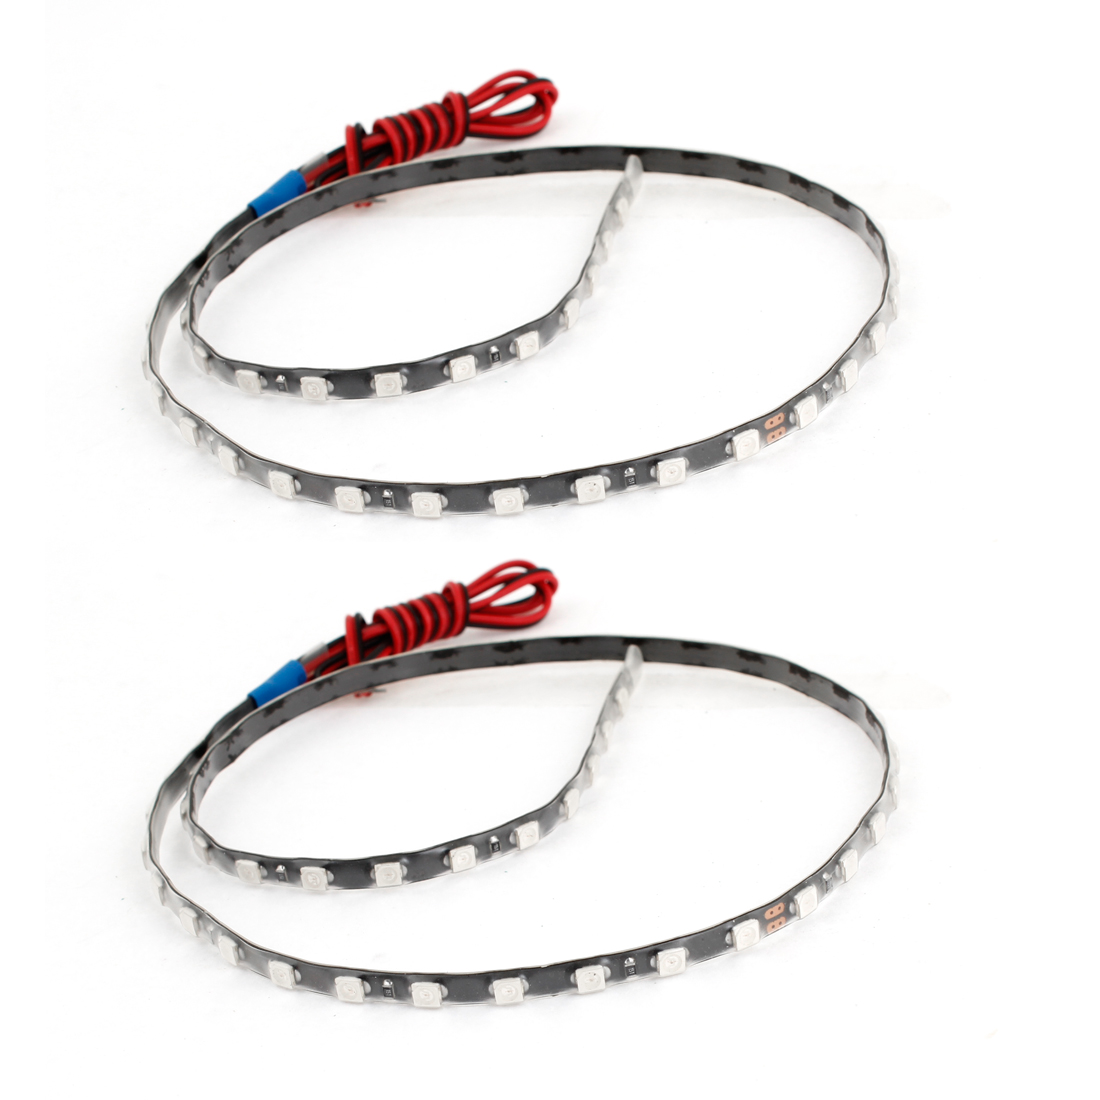 2PCS Blue 45 1210 SMD Vehicle Car LED Flexible Light Strip Decor 45cm Long